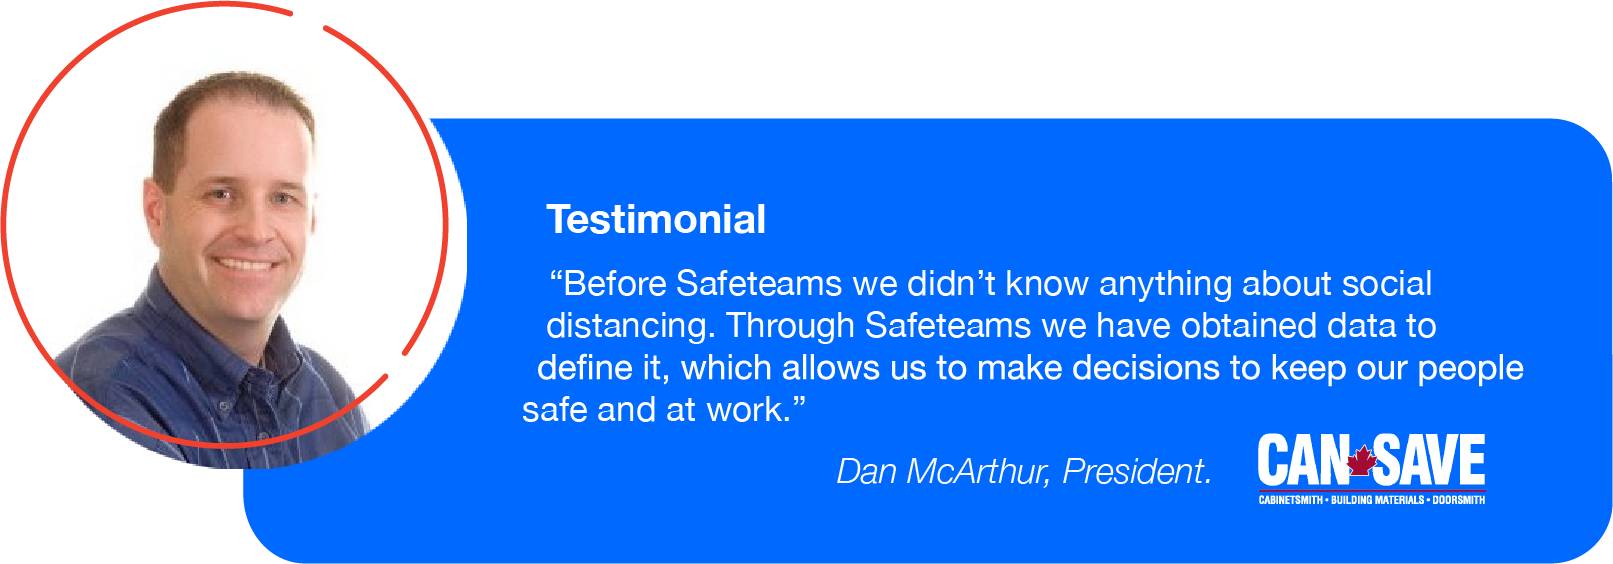 Safeteams_CanSave_Testimonial_website